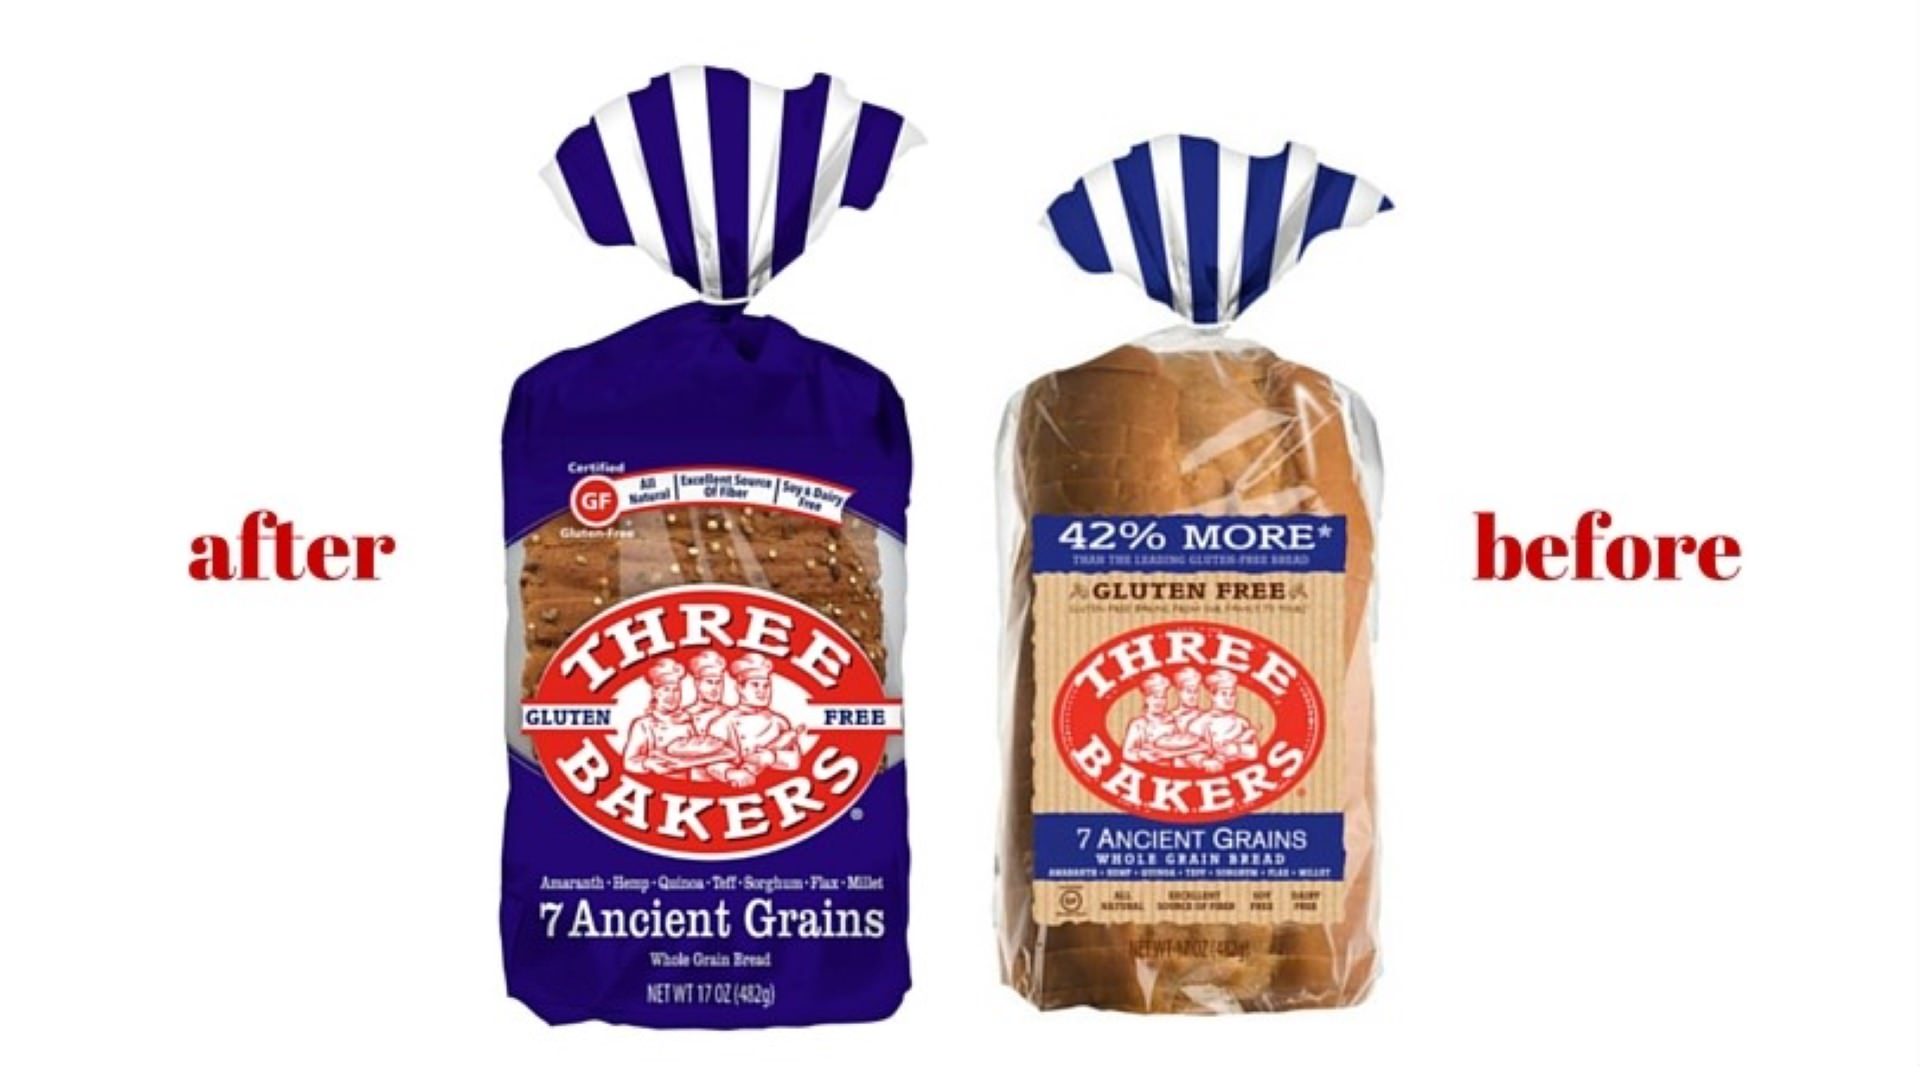 Introducing New Three Bakers Bread Packaging - Three Bakers